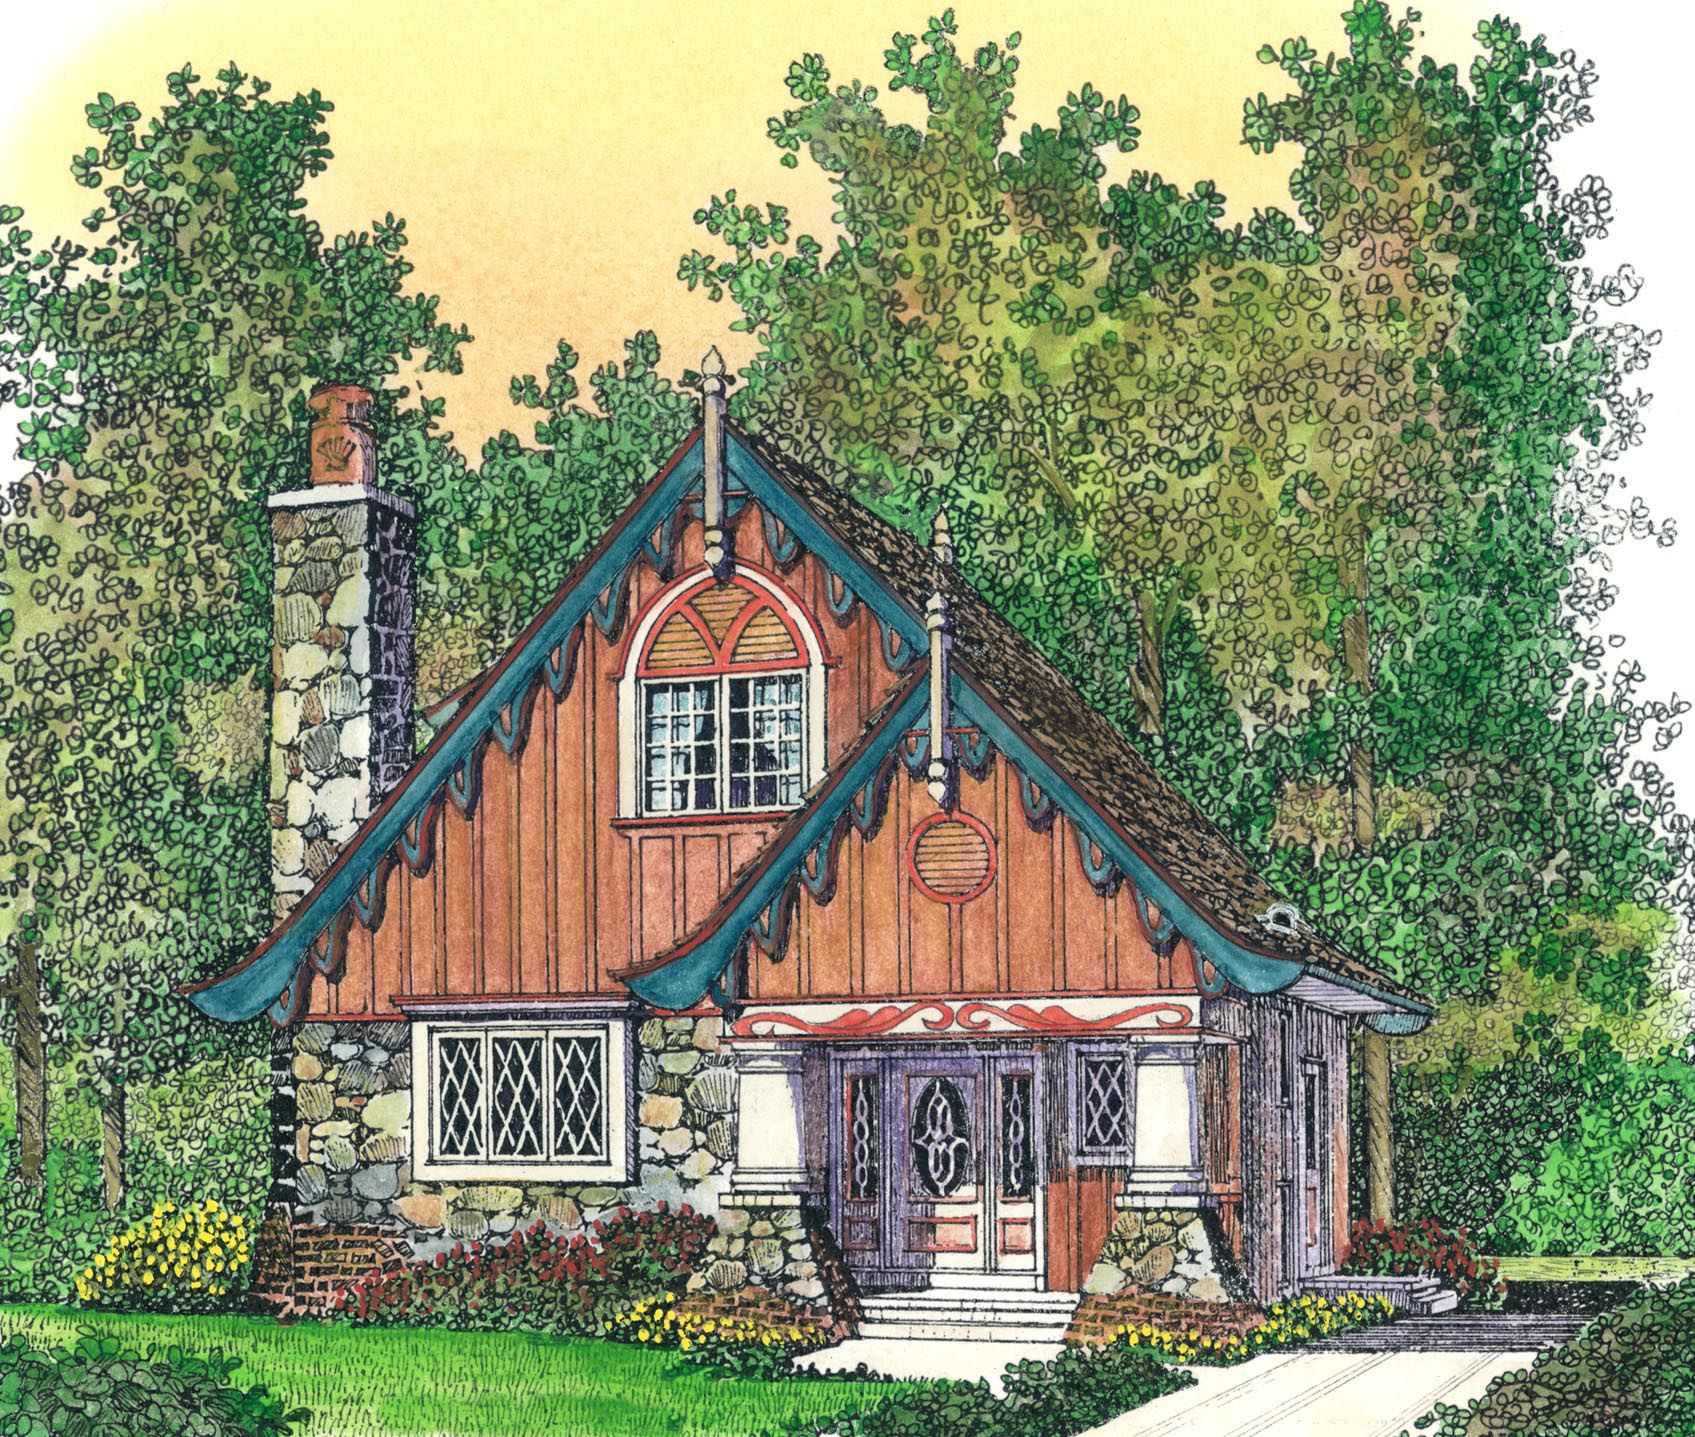 rustic 2 bed dacha house plan 43076pf 2nd floor master suite plan 43076pf rustic 2 bed dacha house plan